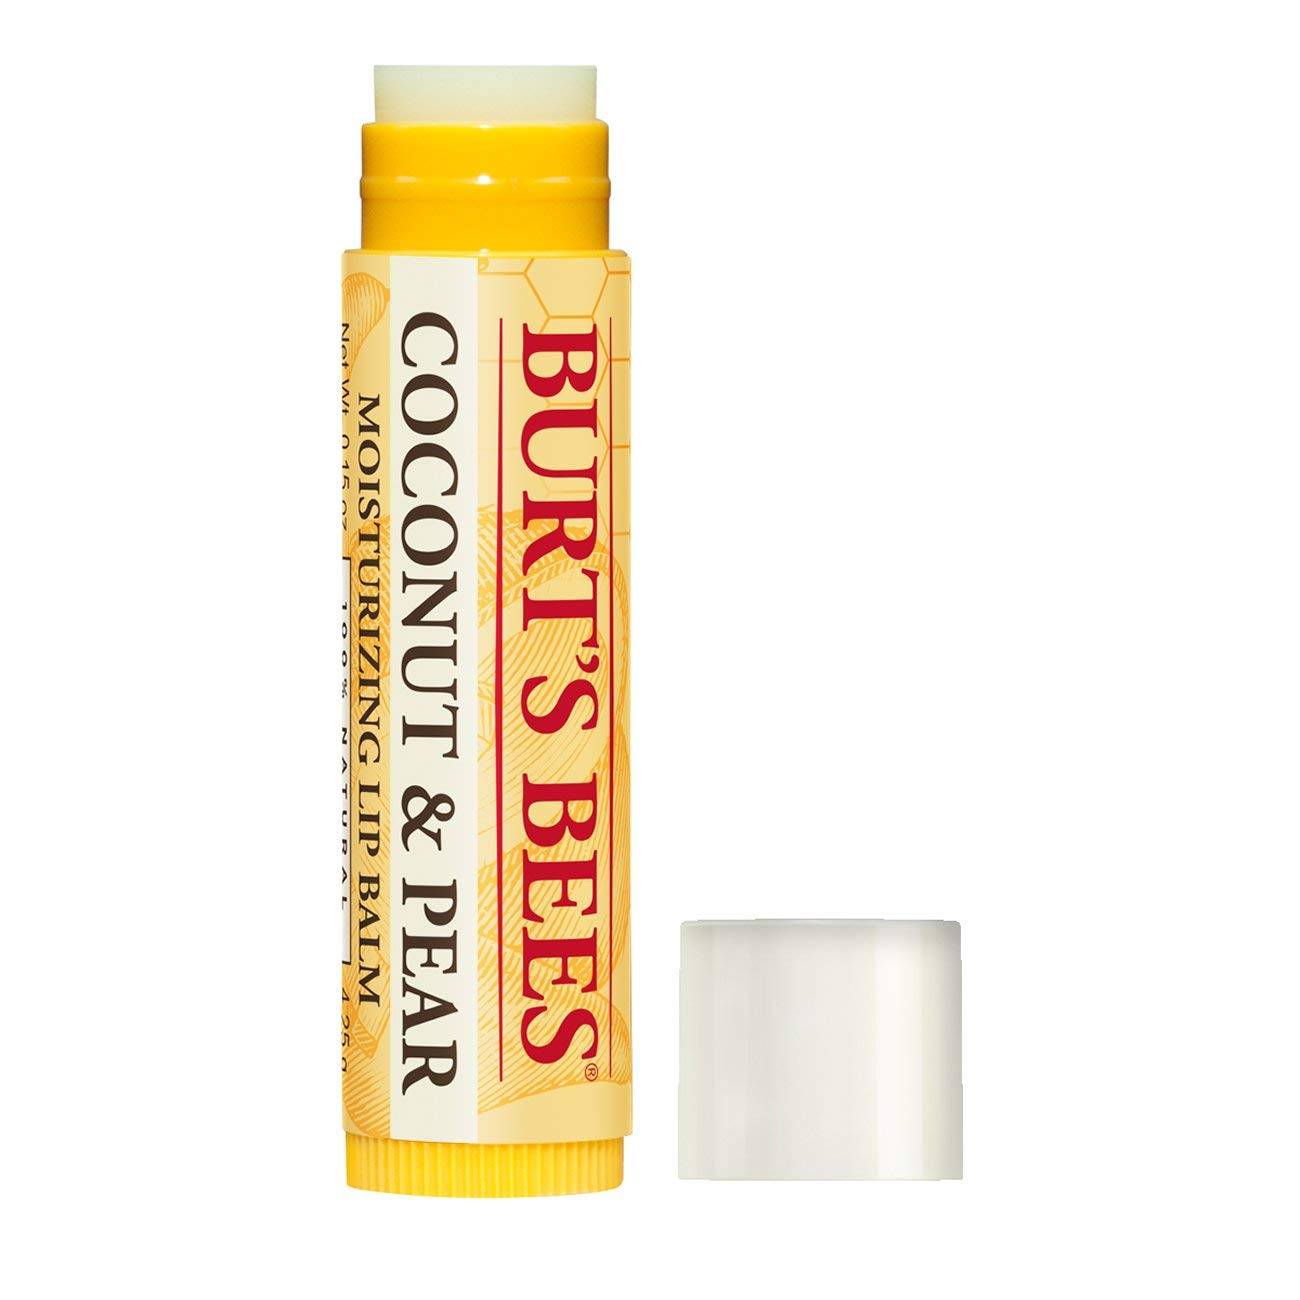 Burts Bees Lip Balm with Coconut and Pear - 0.15 oz by Burts Bees: Amazon.es: Salud y cuidado personal